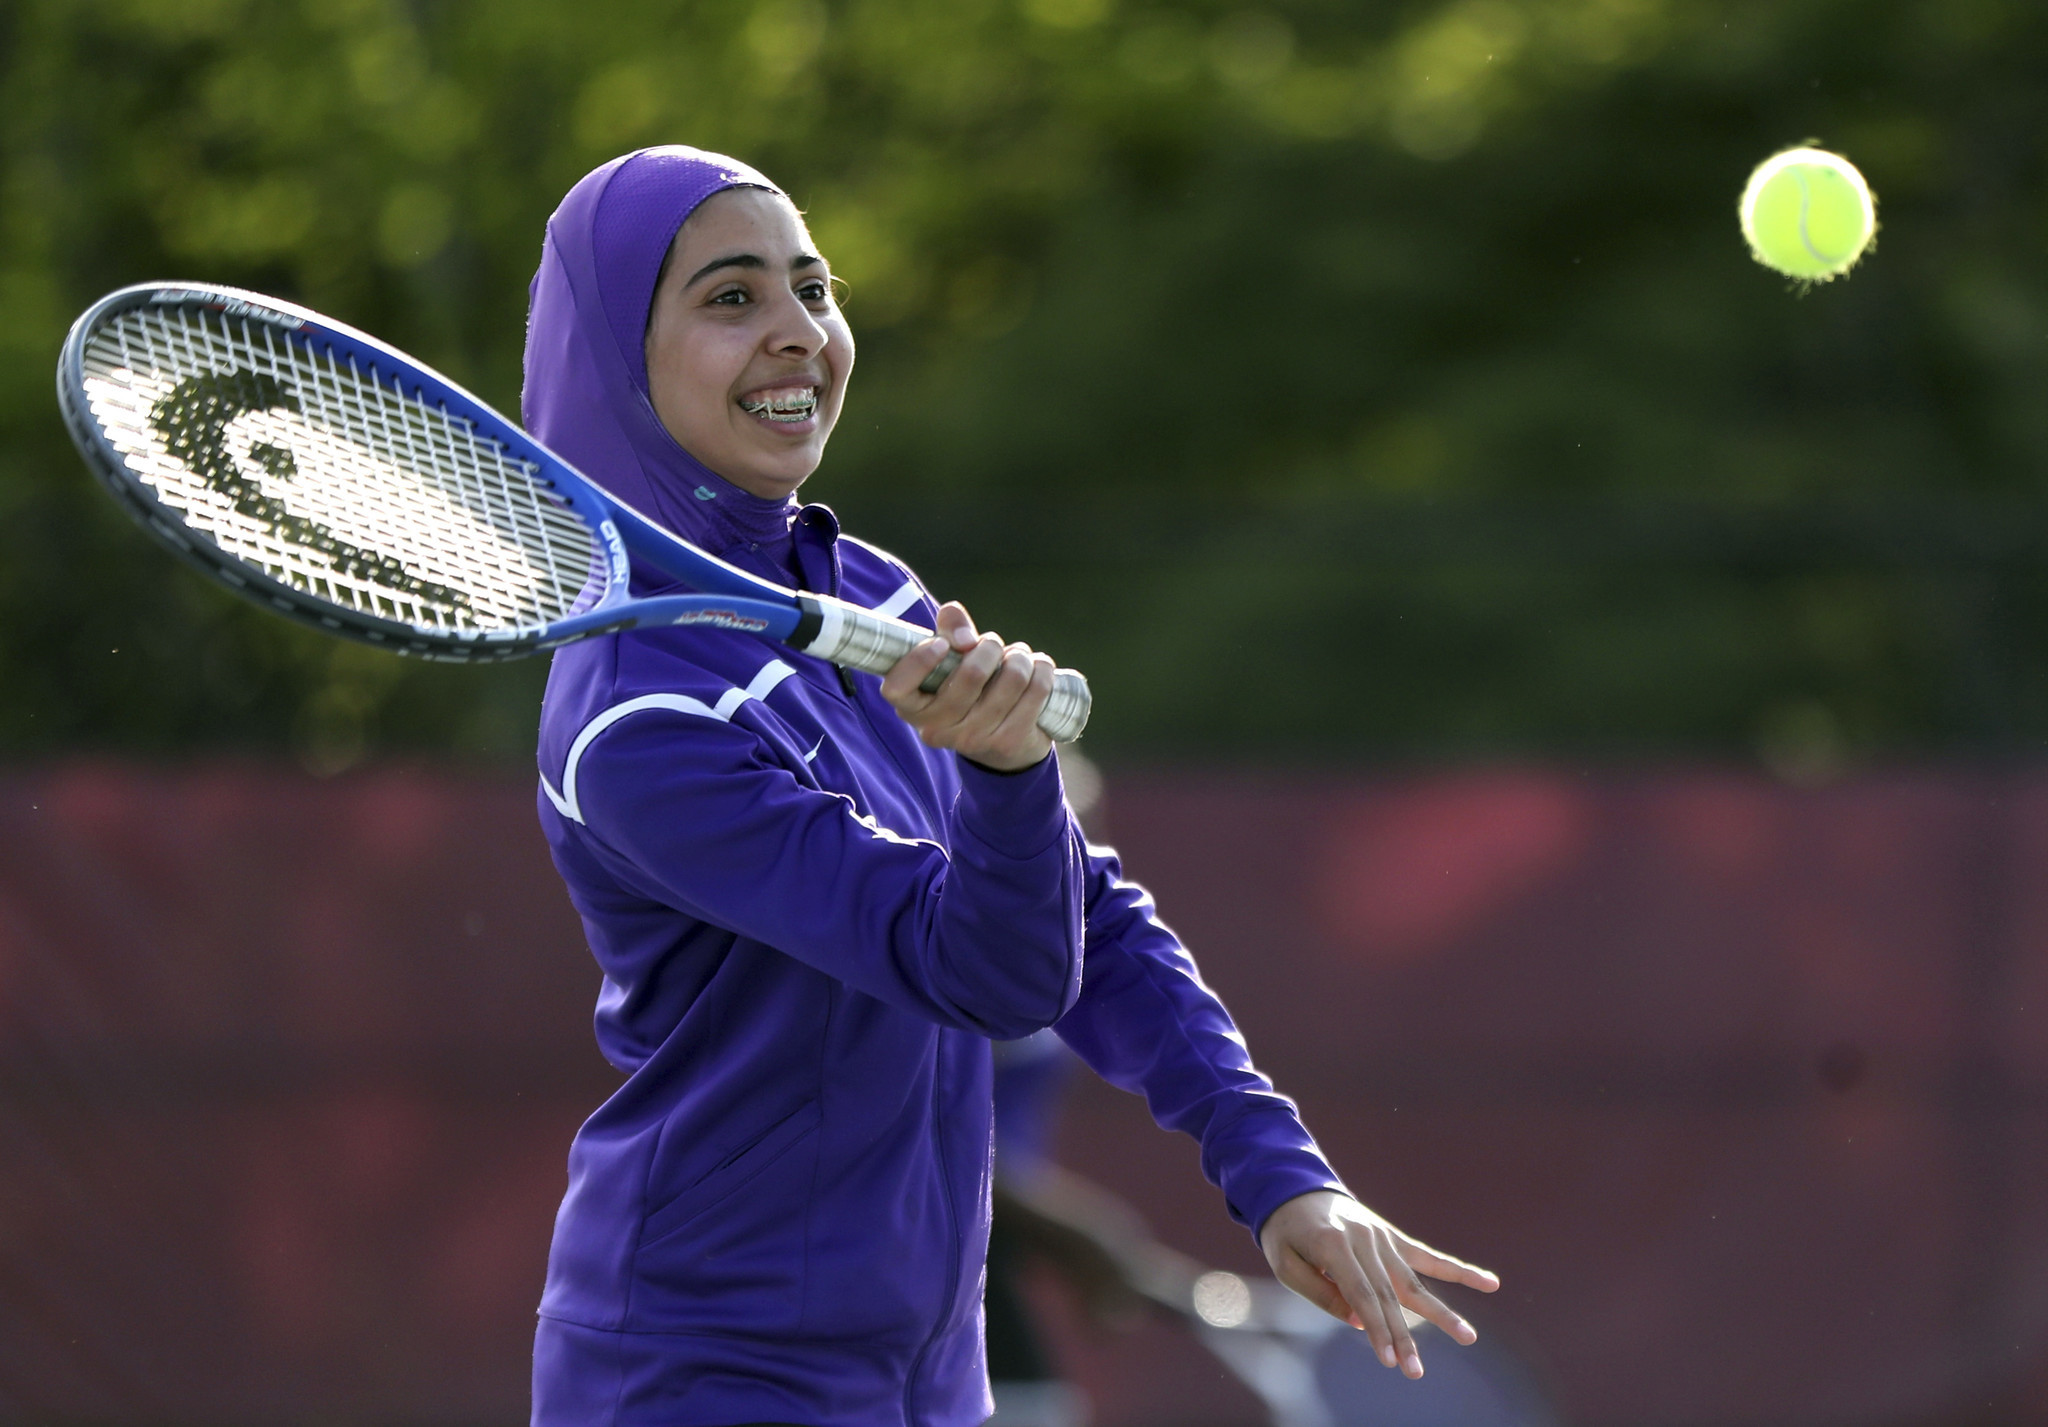 Maine high school reportedly first in US to provide Muslim athletes sport hijabs